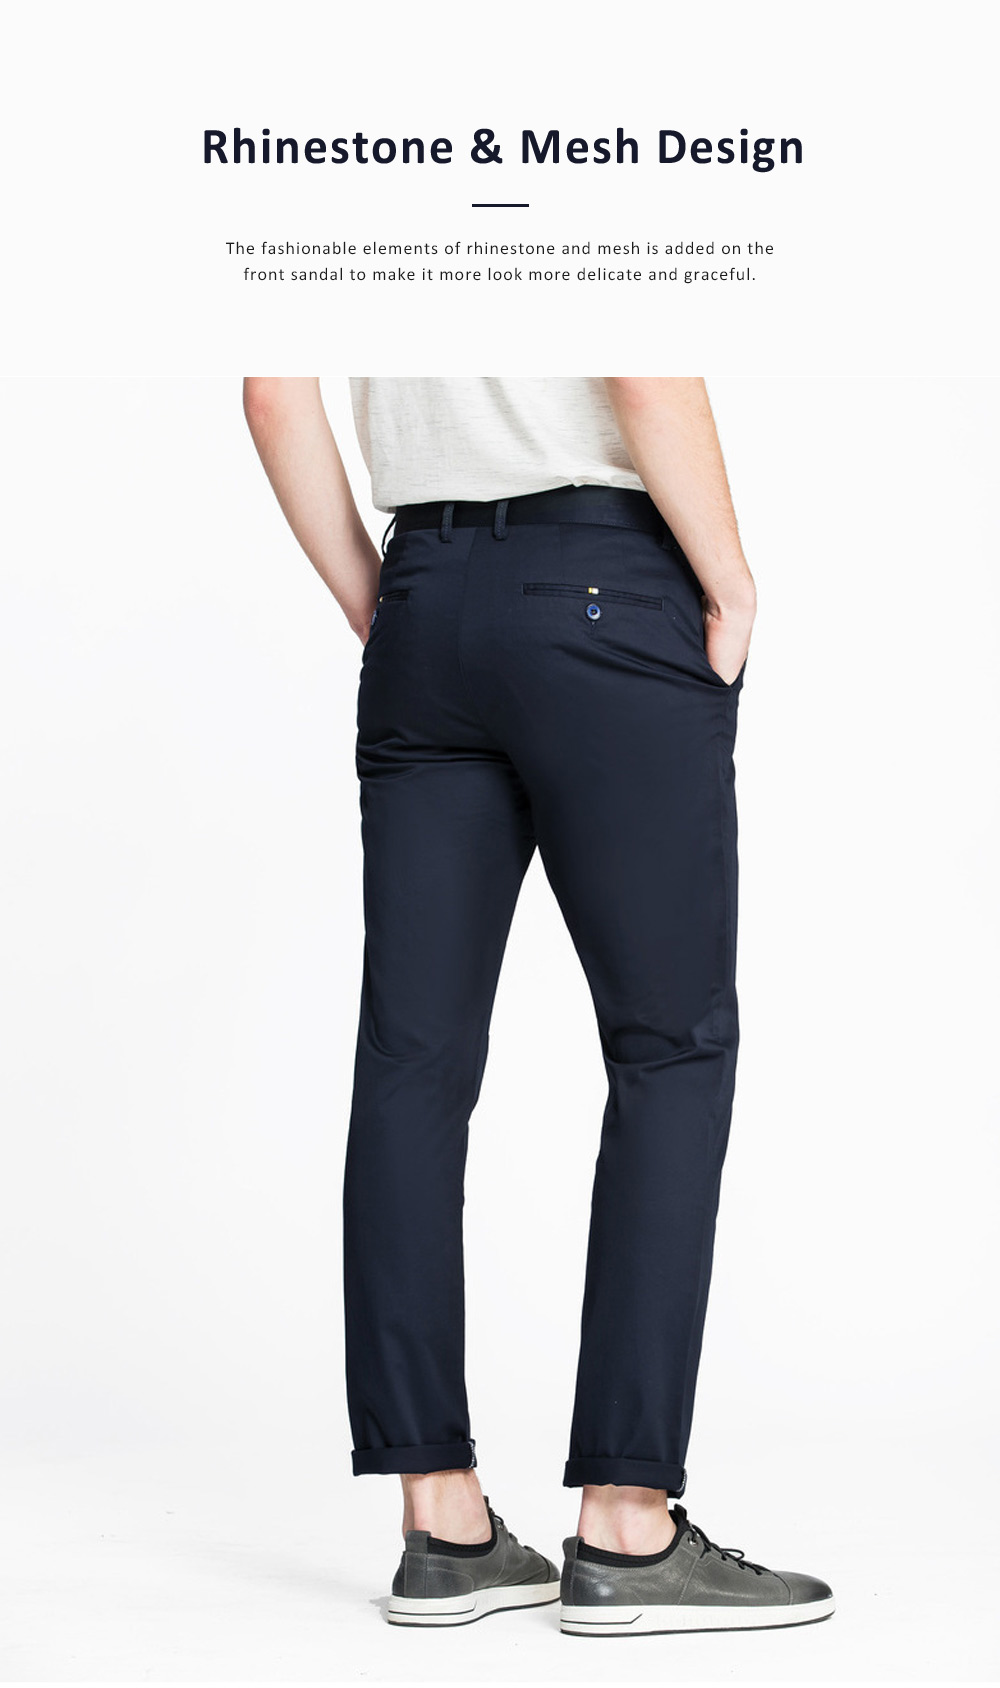 Mid-rise Straight-leg Pants for Men Spring, Pure Color Designed Straight Trousers, Slightly Elastic Fabric Casual Style Men's Wear 2